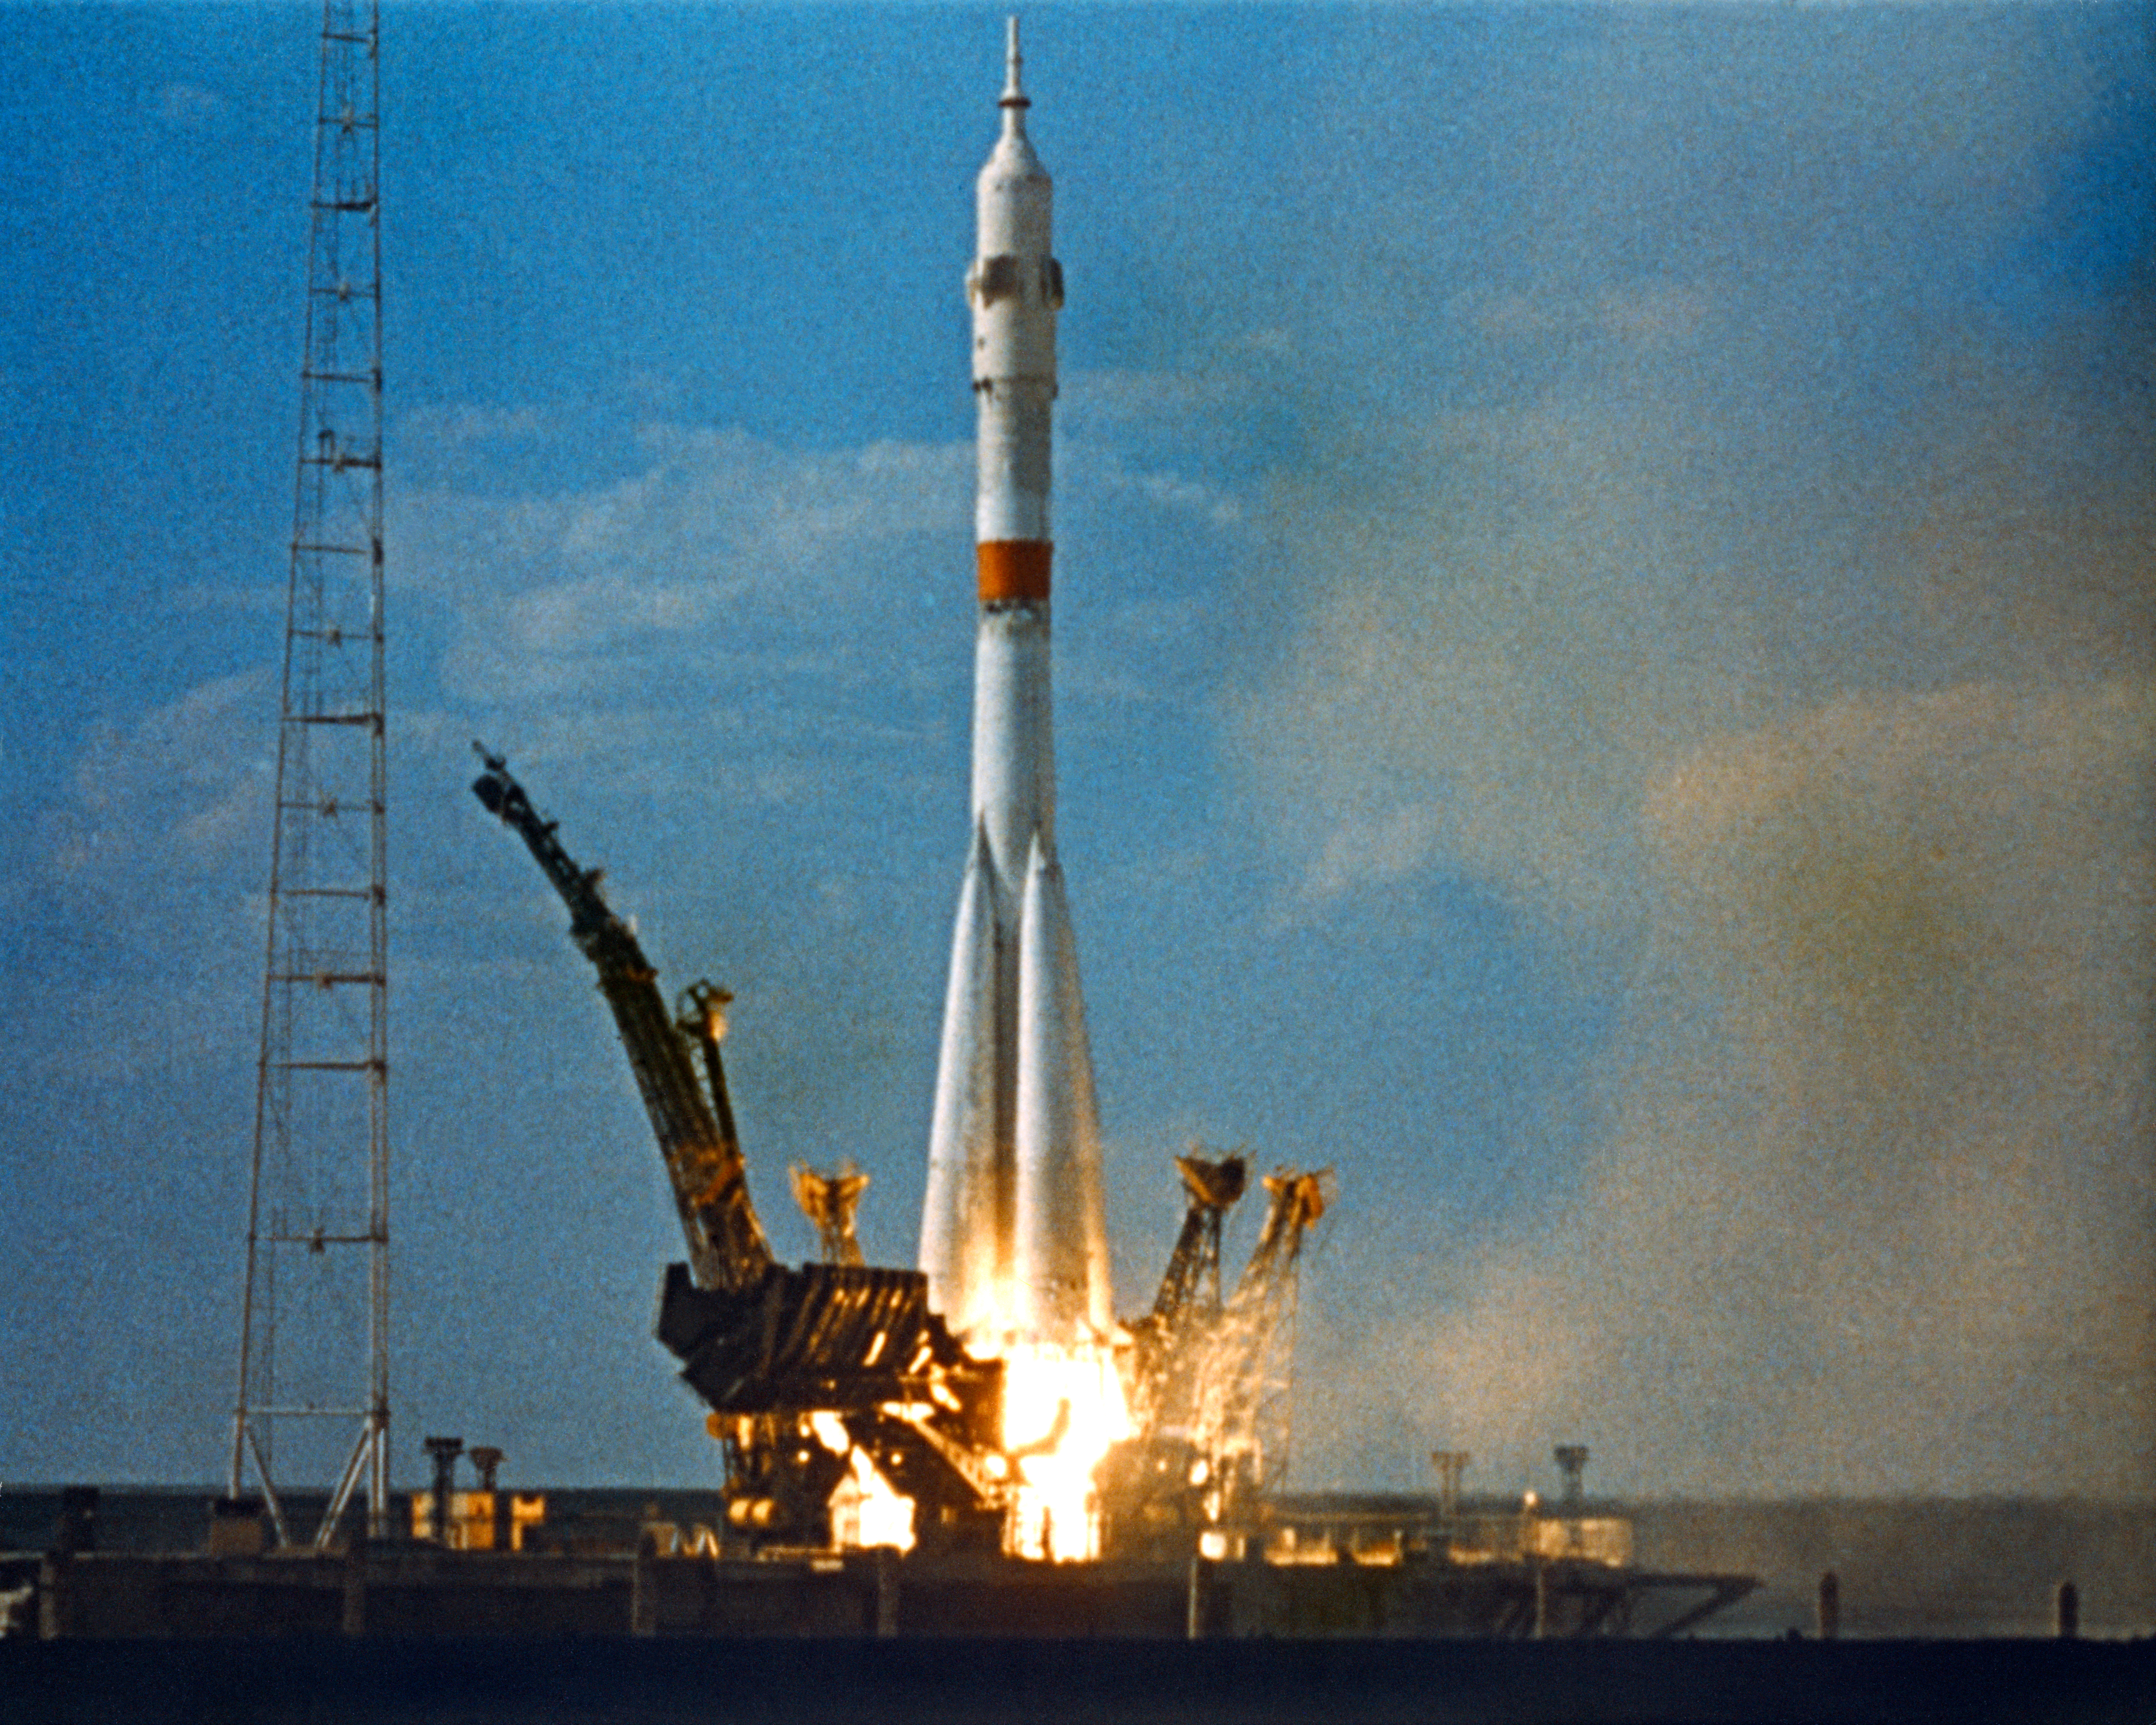 The Soviet Soyuz launch vehicle leaves from the Baikonur Cosmodrome in Kazakhstan.